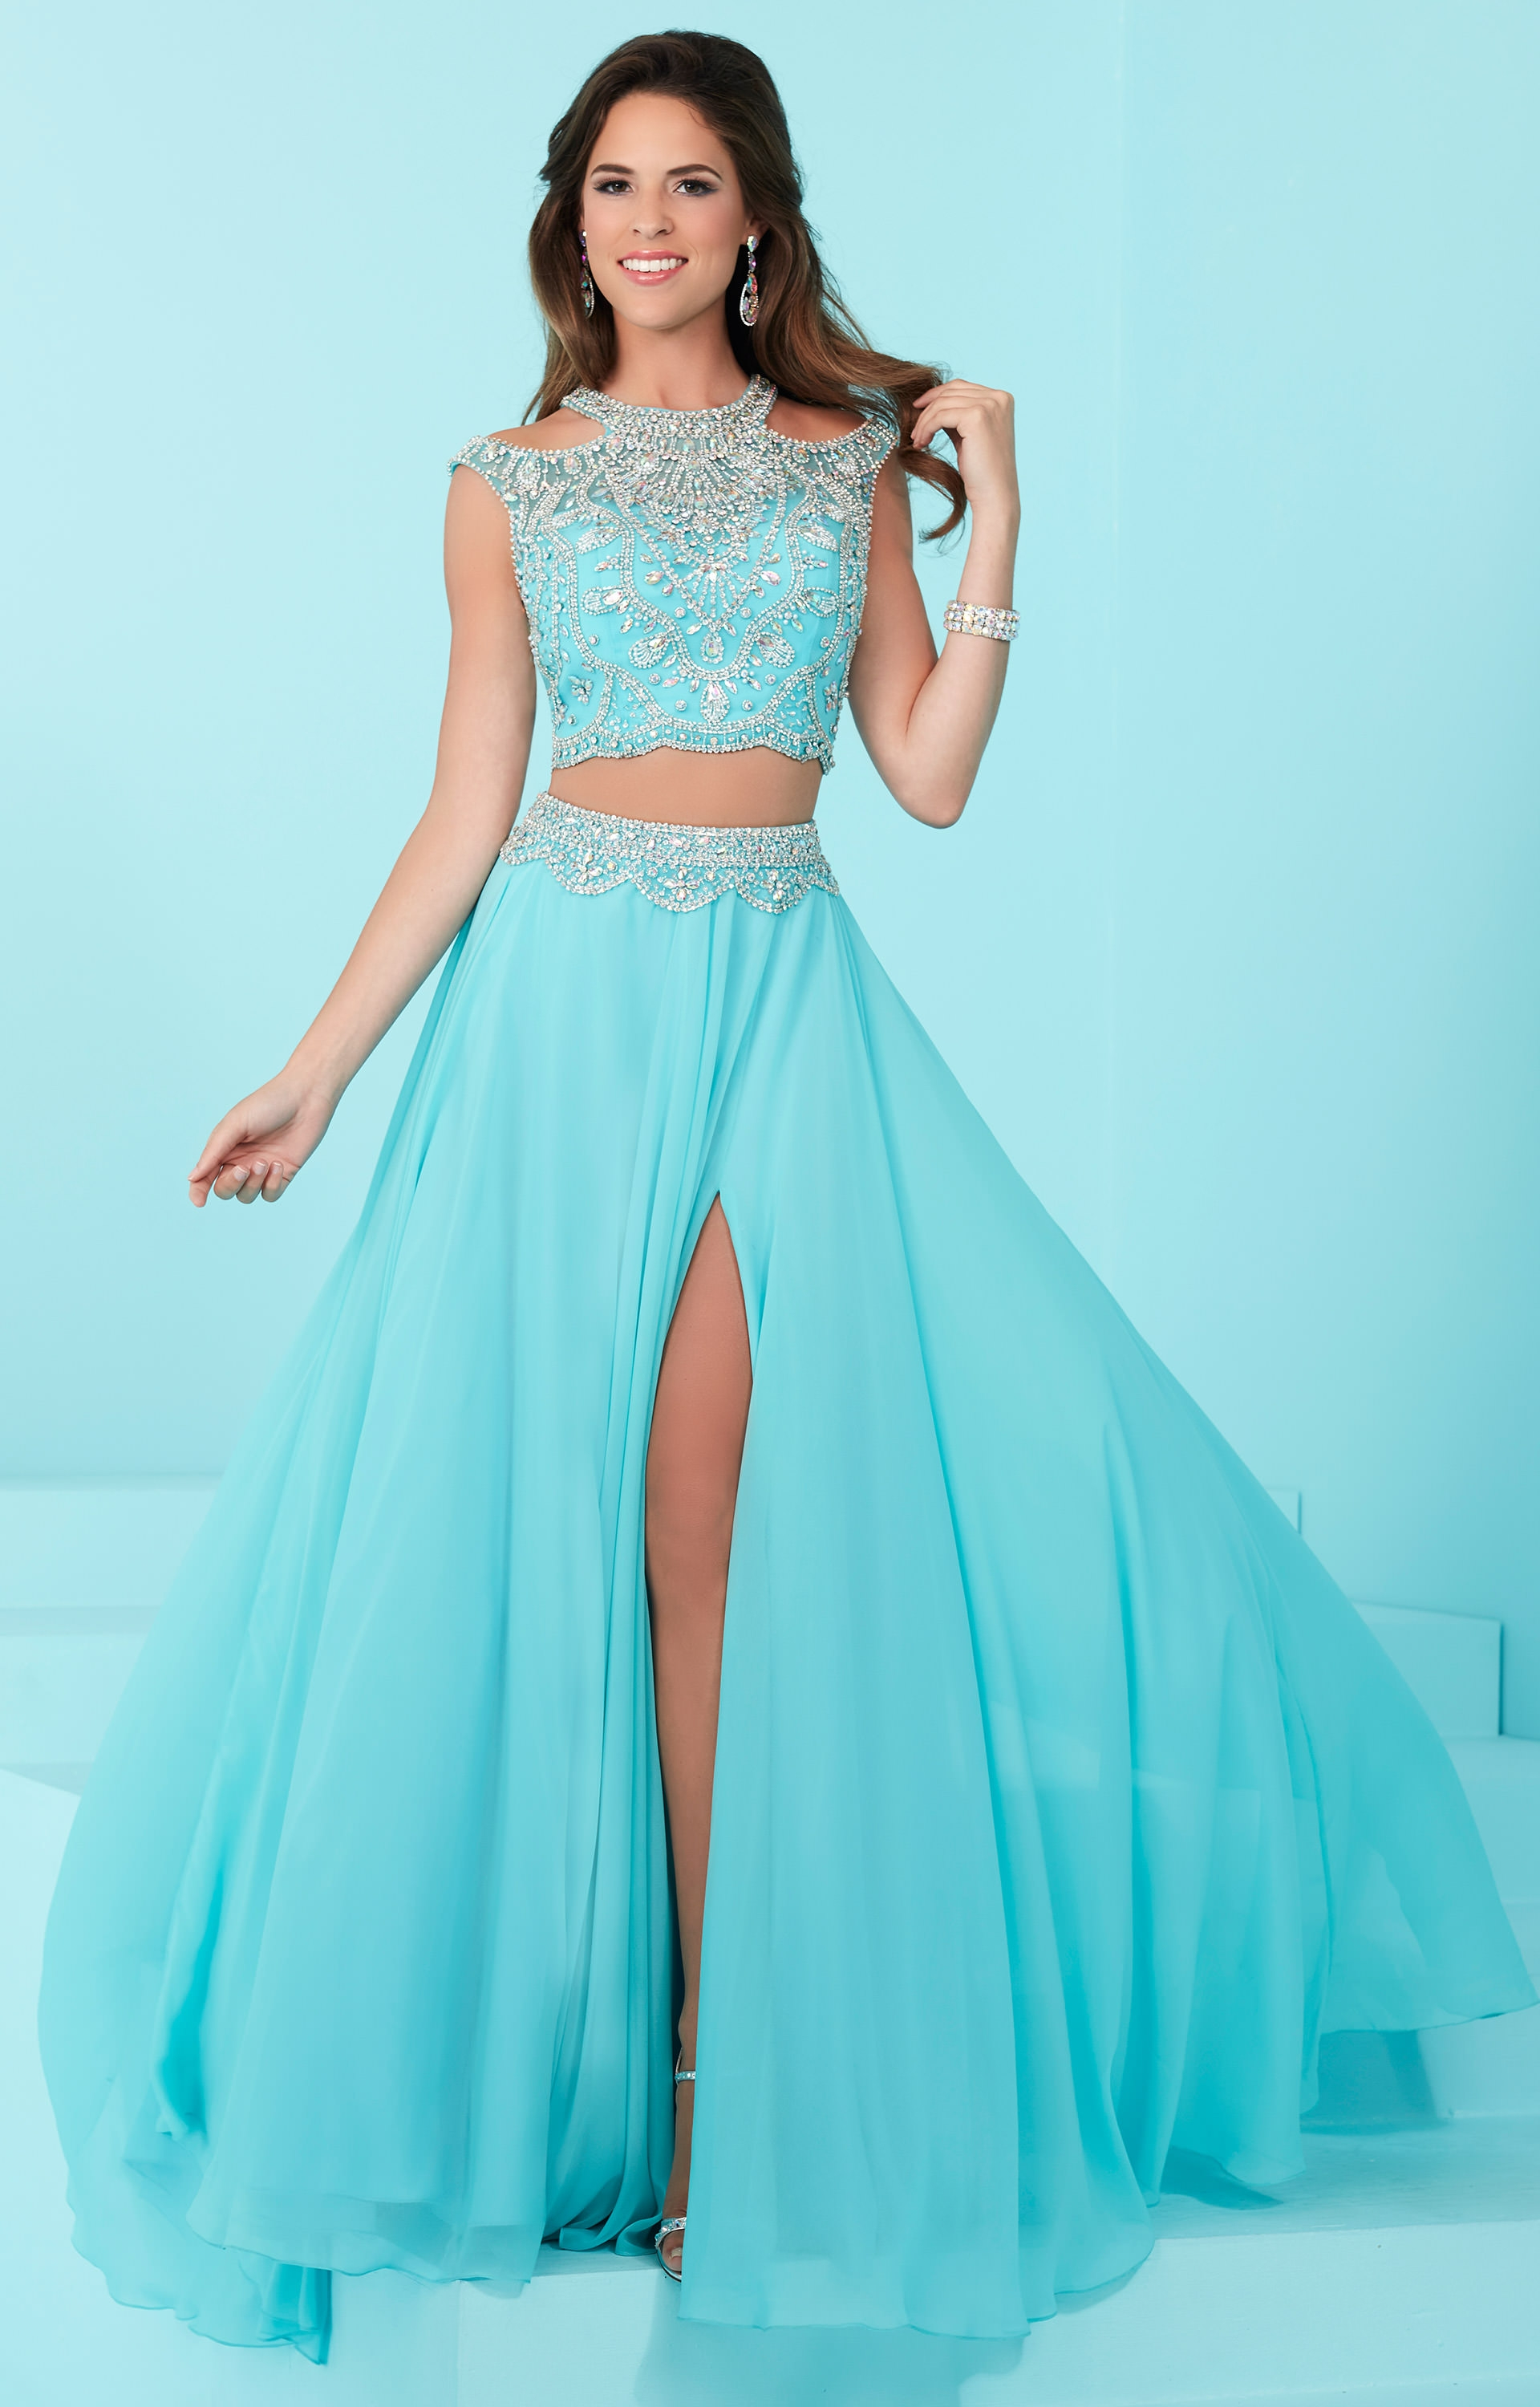 Tiffany Designs 16202 - 2 Piece Dress with High Slit Prom